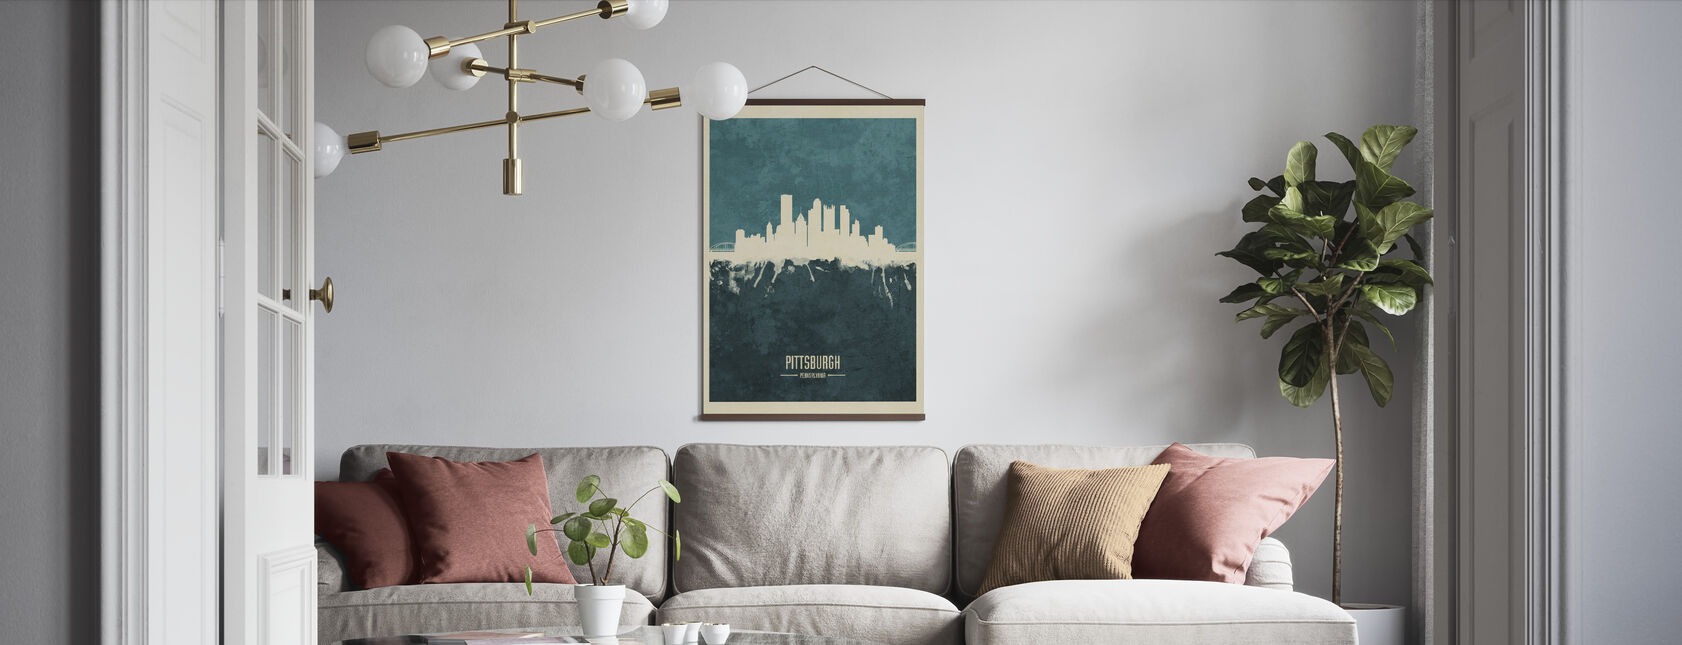 Pittsburgh Pennsylvania Skyline Blue - Poster - Living Room